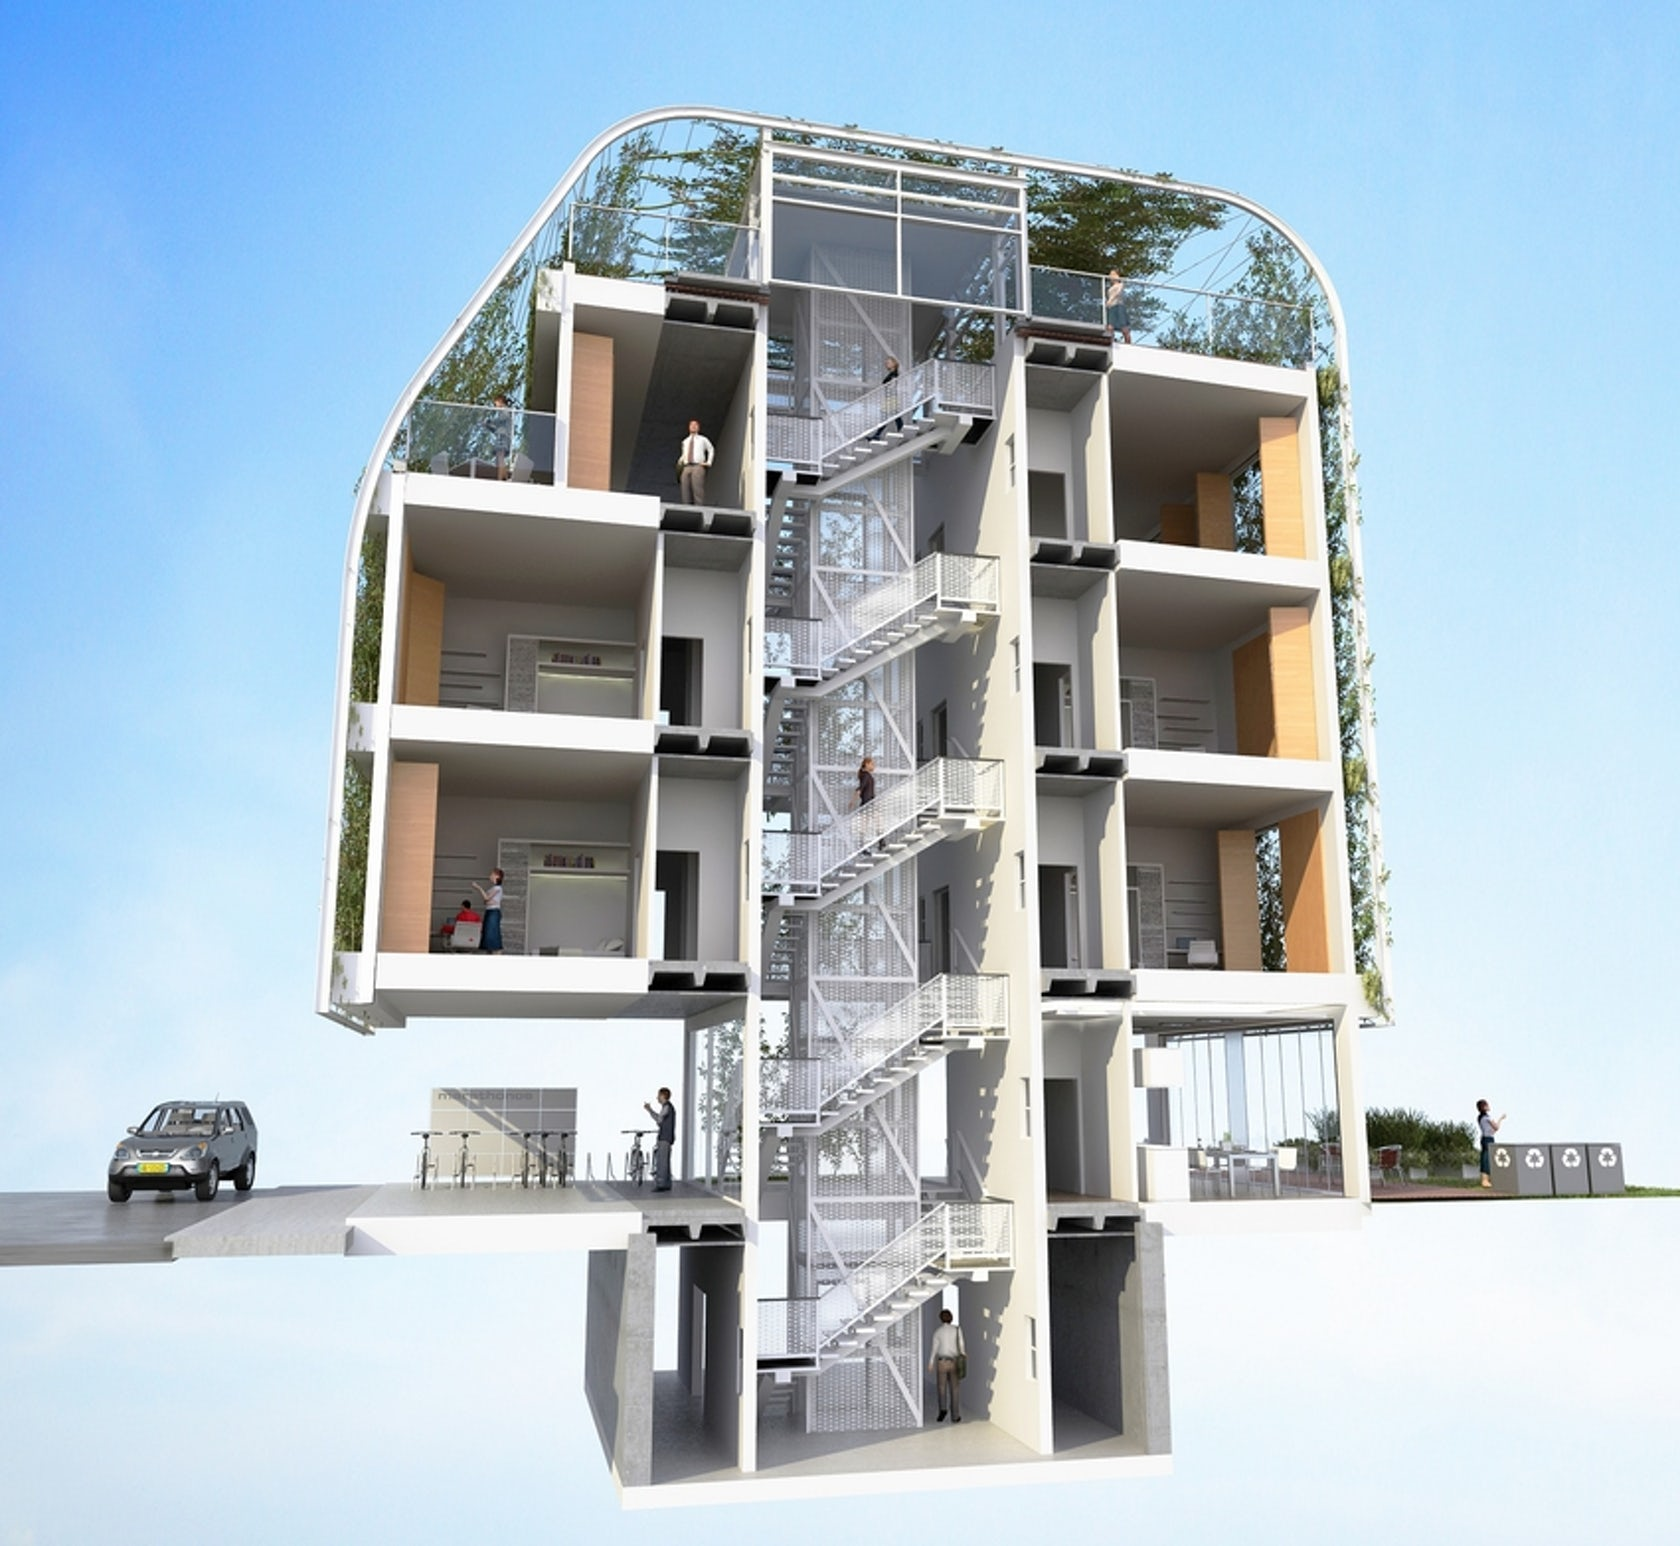 Student Apartment: UPTO35 STUDENT HOUSING COMPETITION